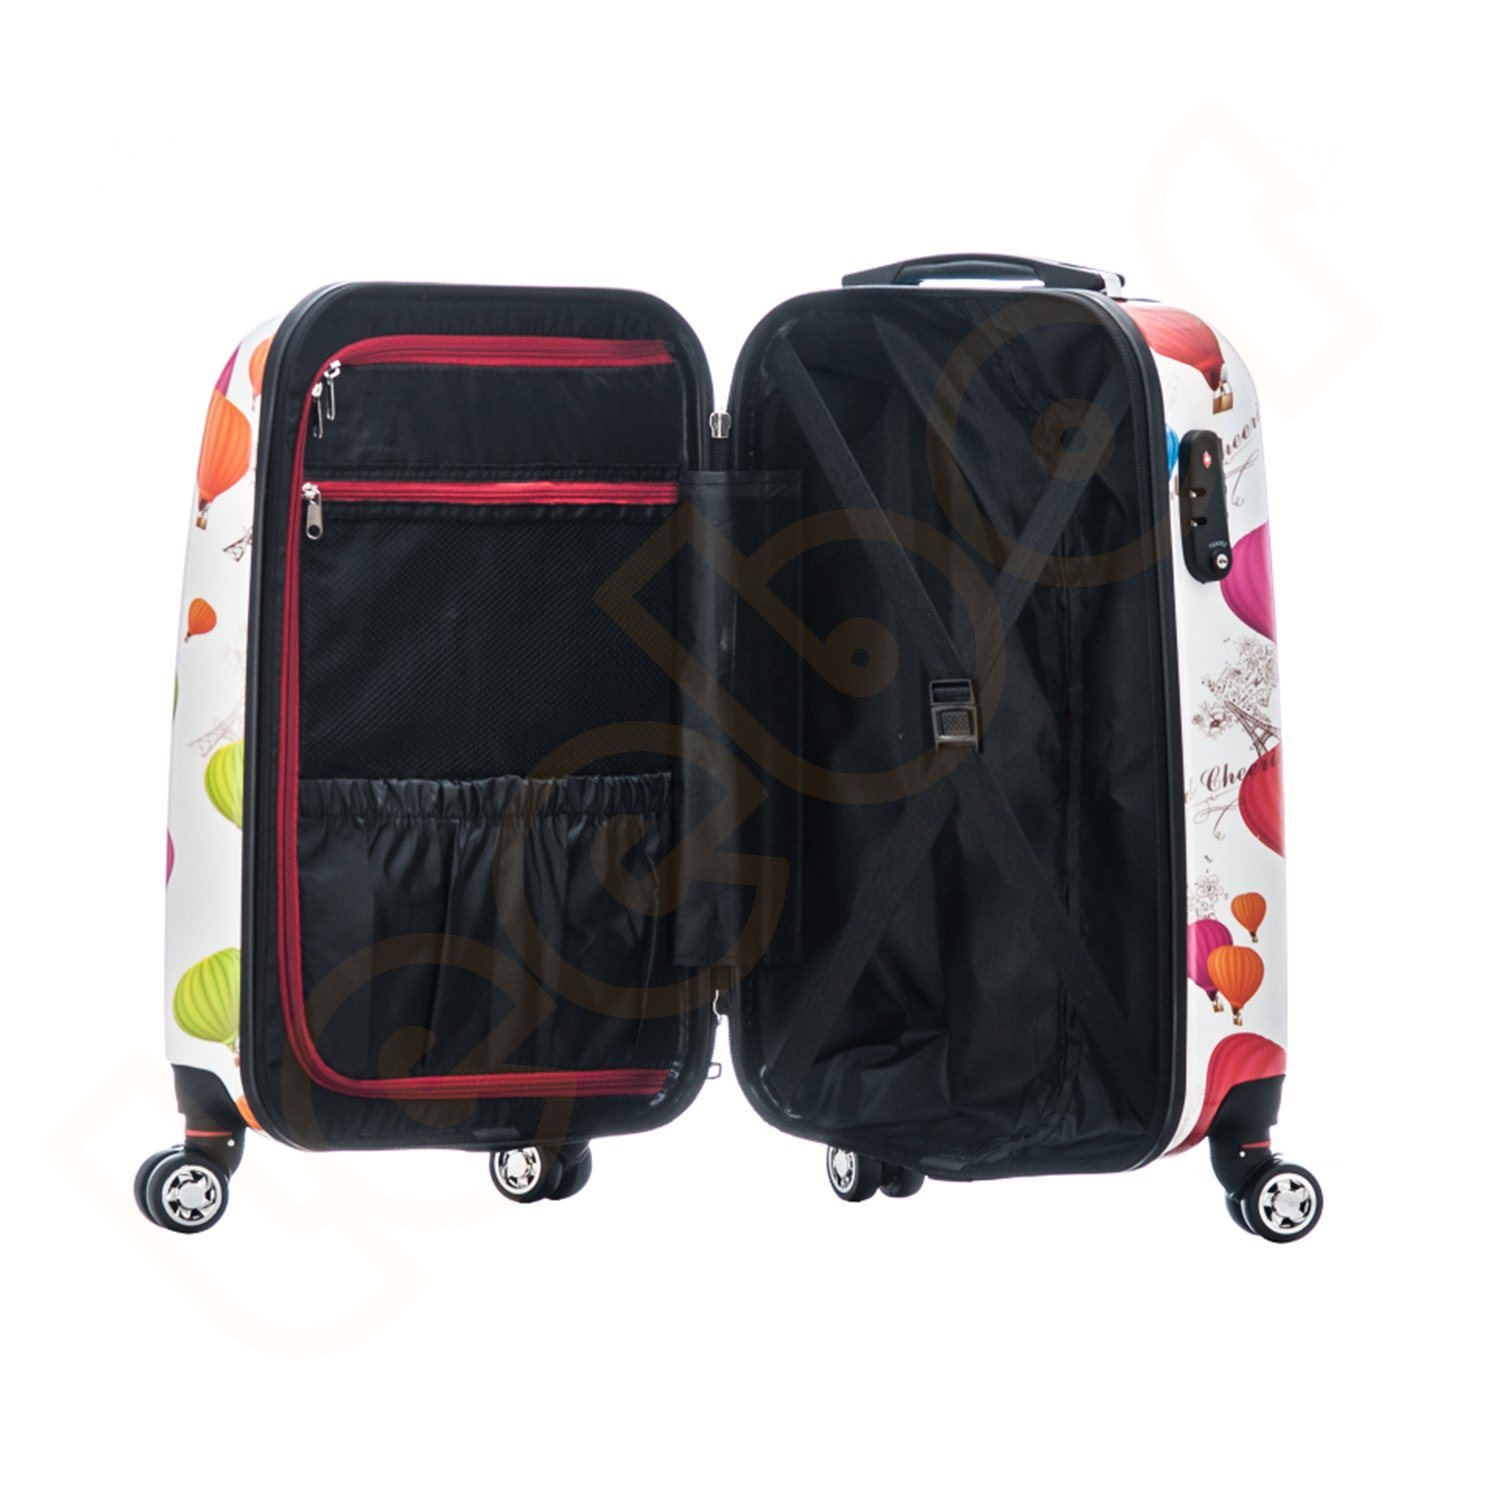 China Leisure Popular ABS+PC Trolley Luggage Hardshell Suitcase with ... bd0c00423a